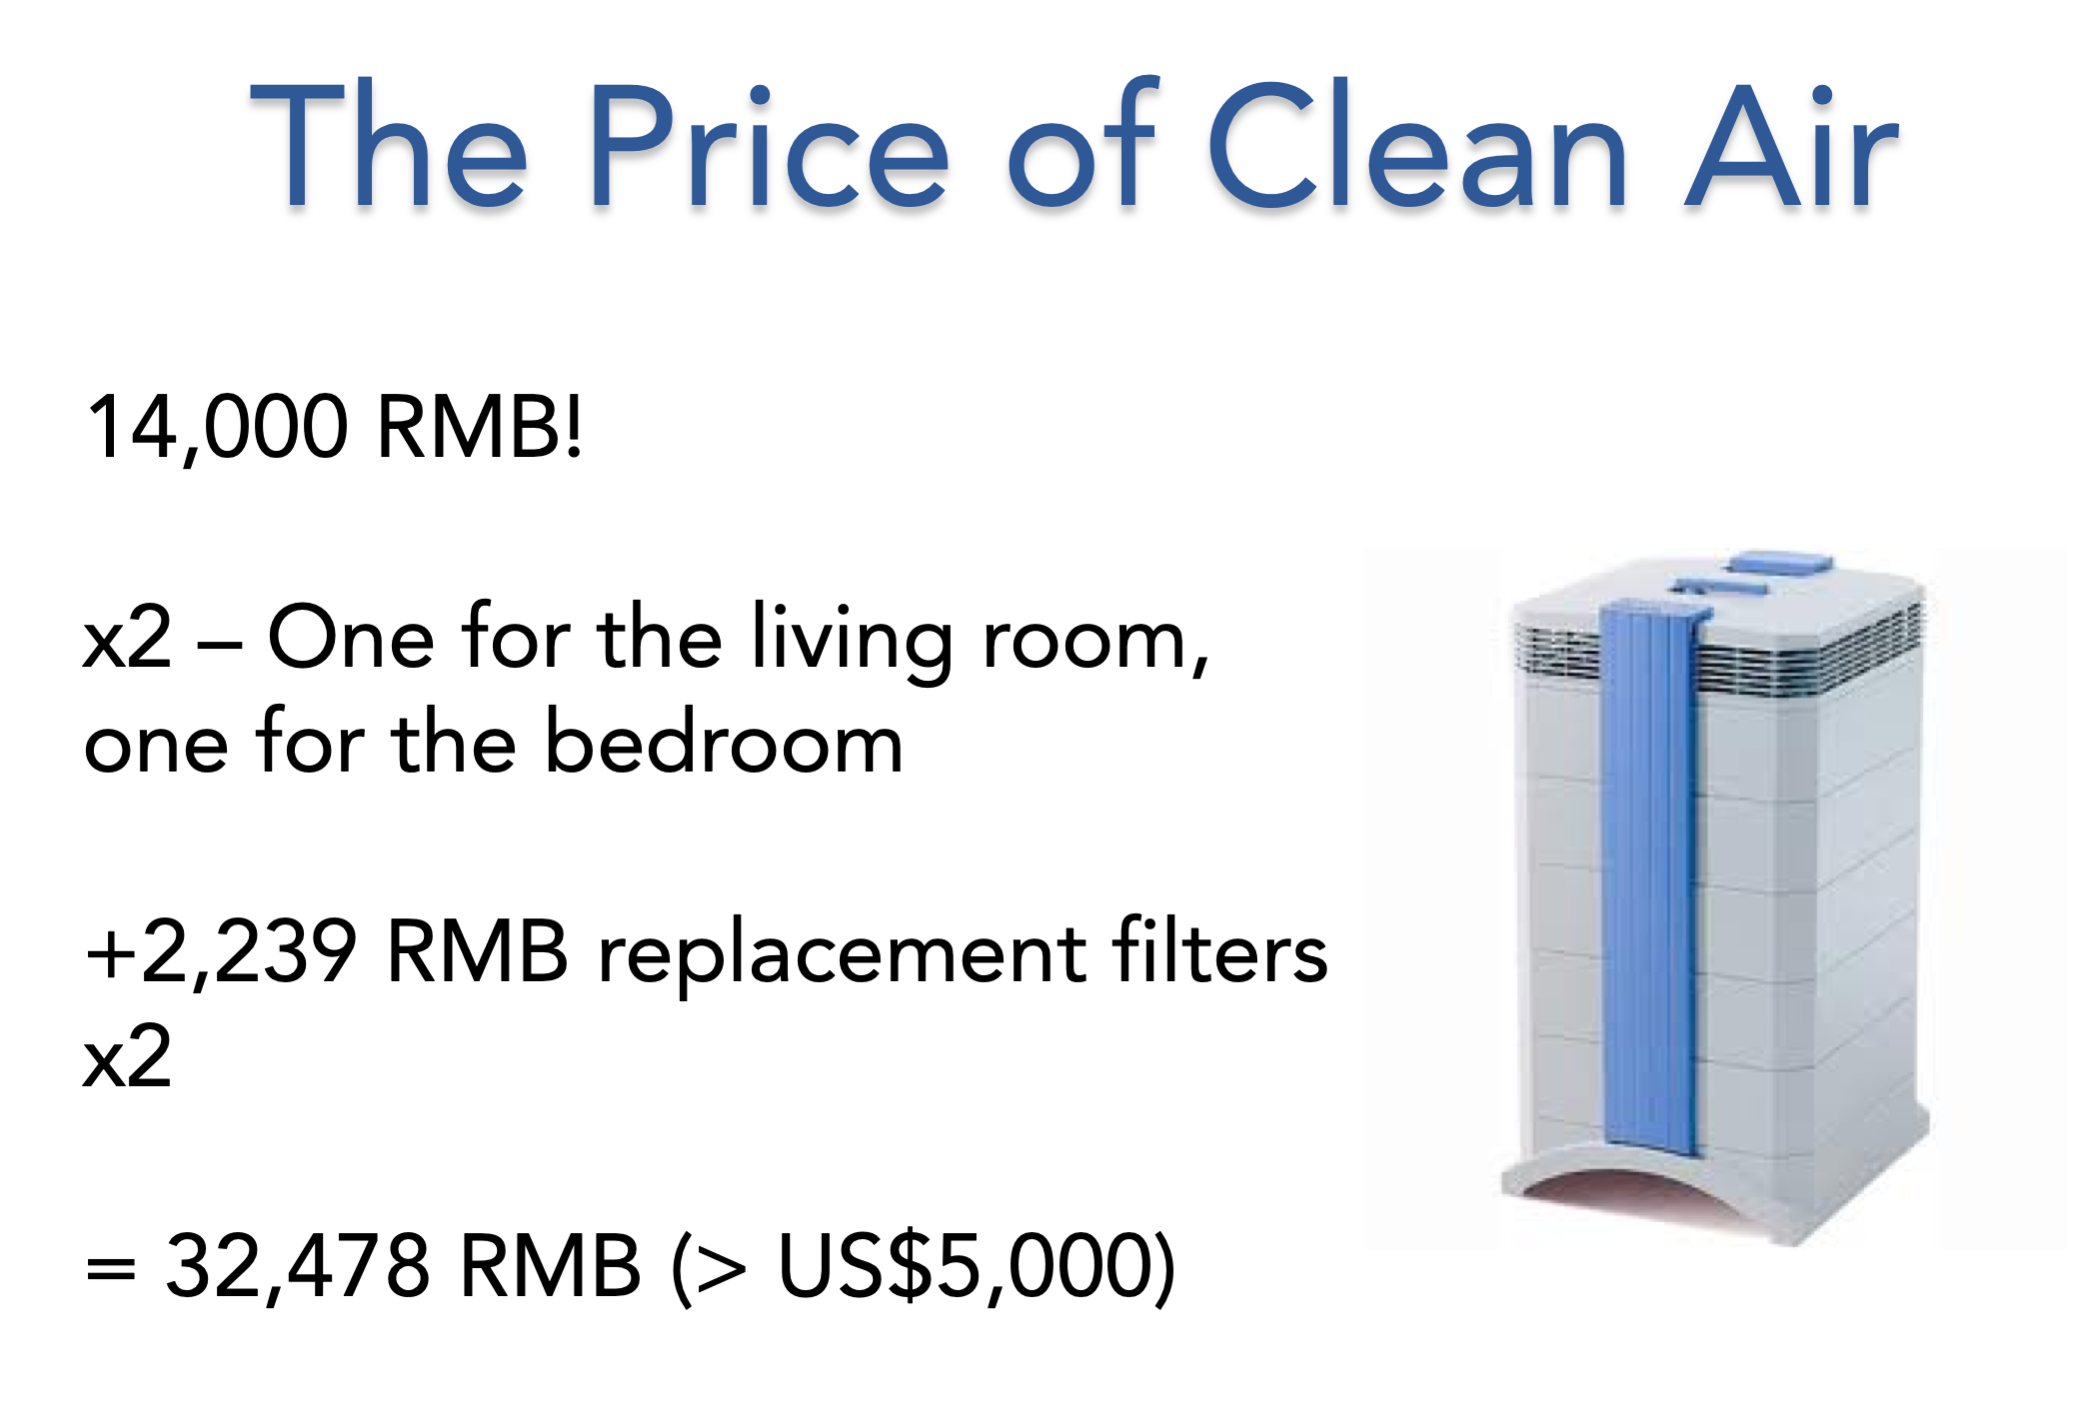 Air purifier price expensive